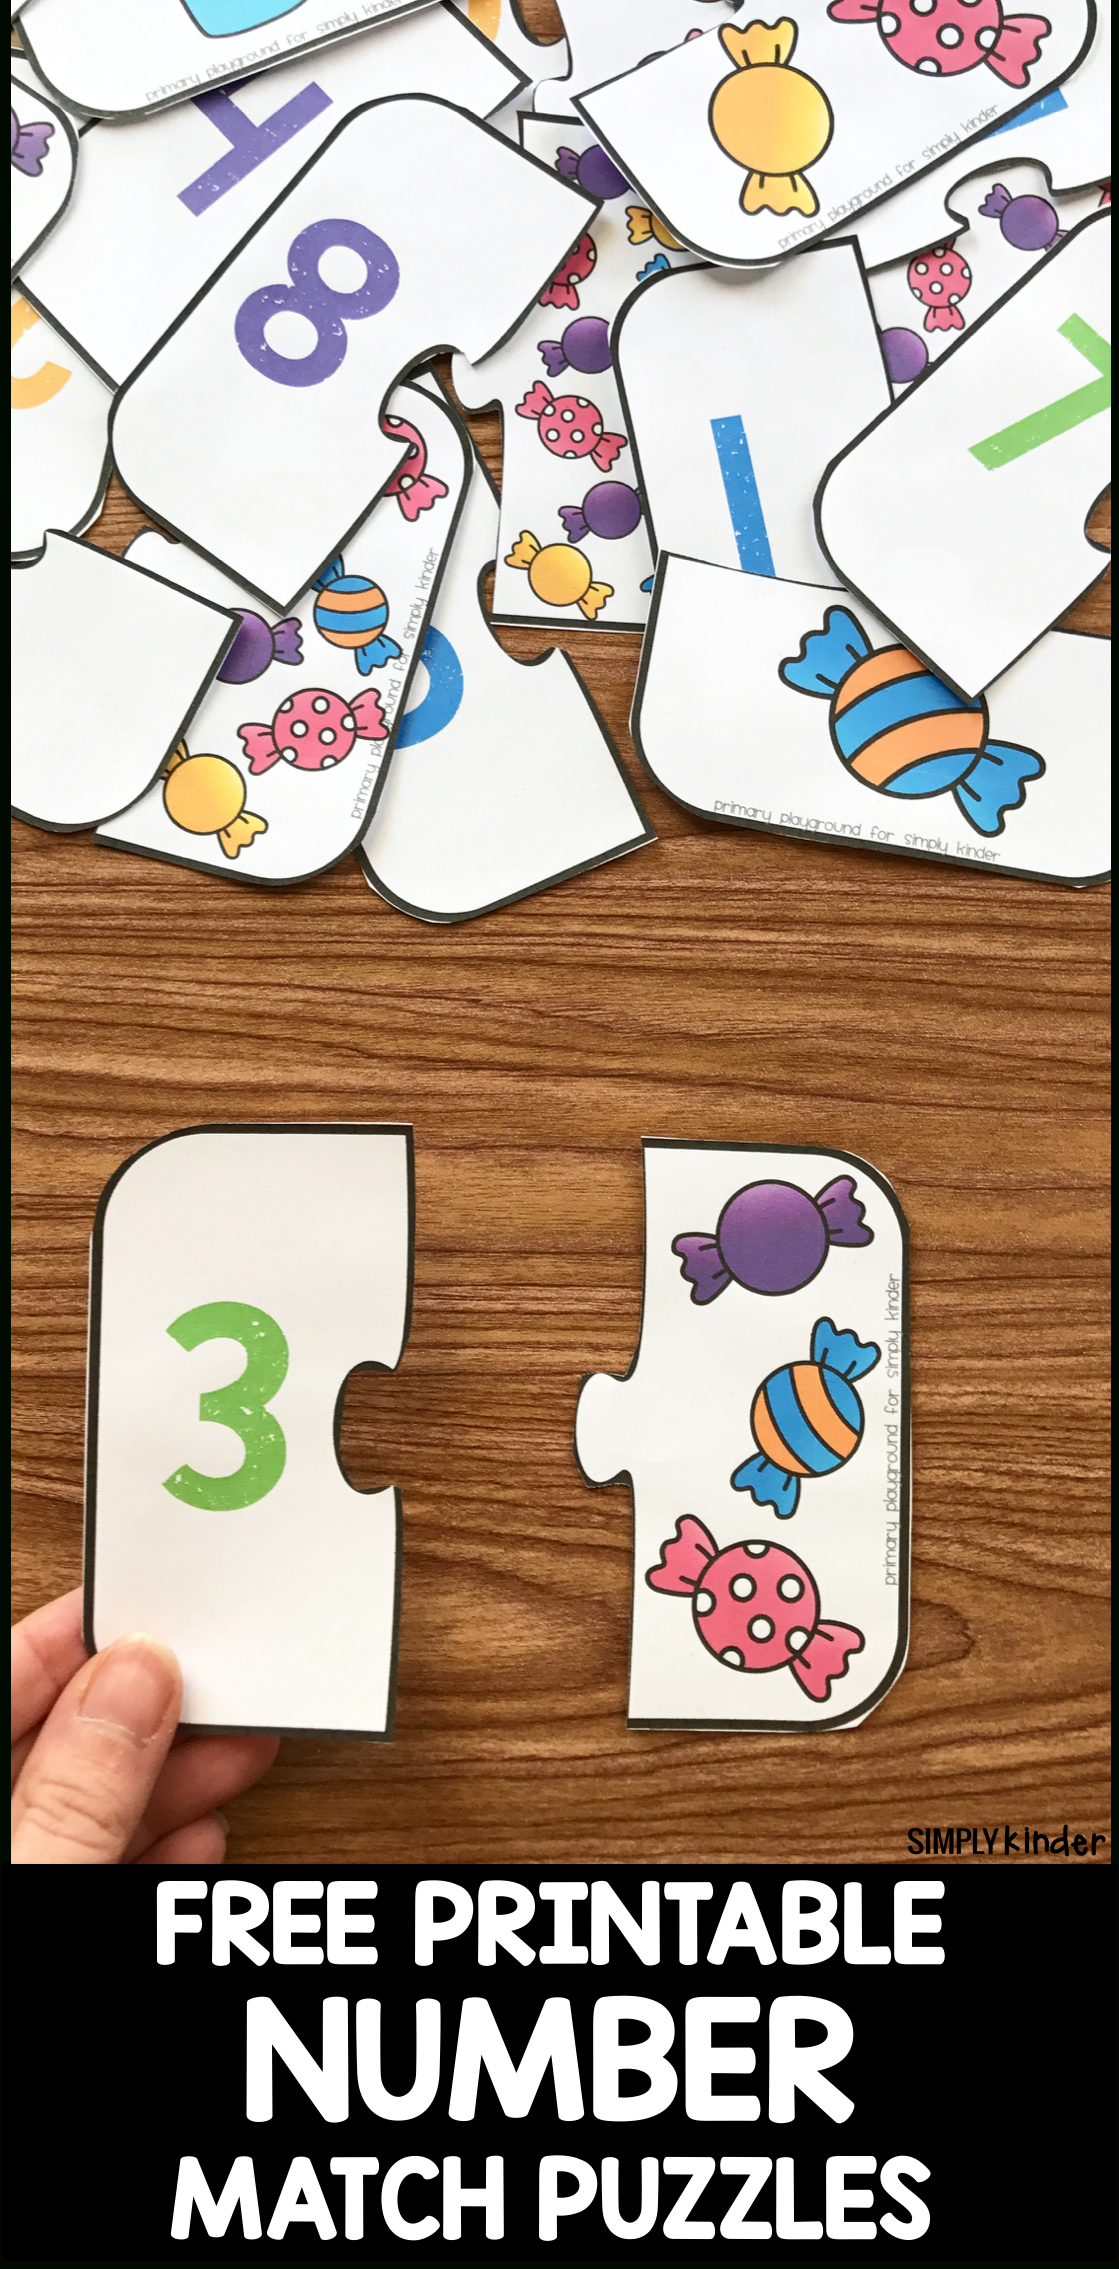 Free Printable Number Match Puzzles - Simply Kinder - Printable Puzzles Kindergarten